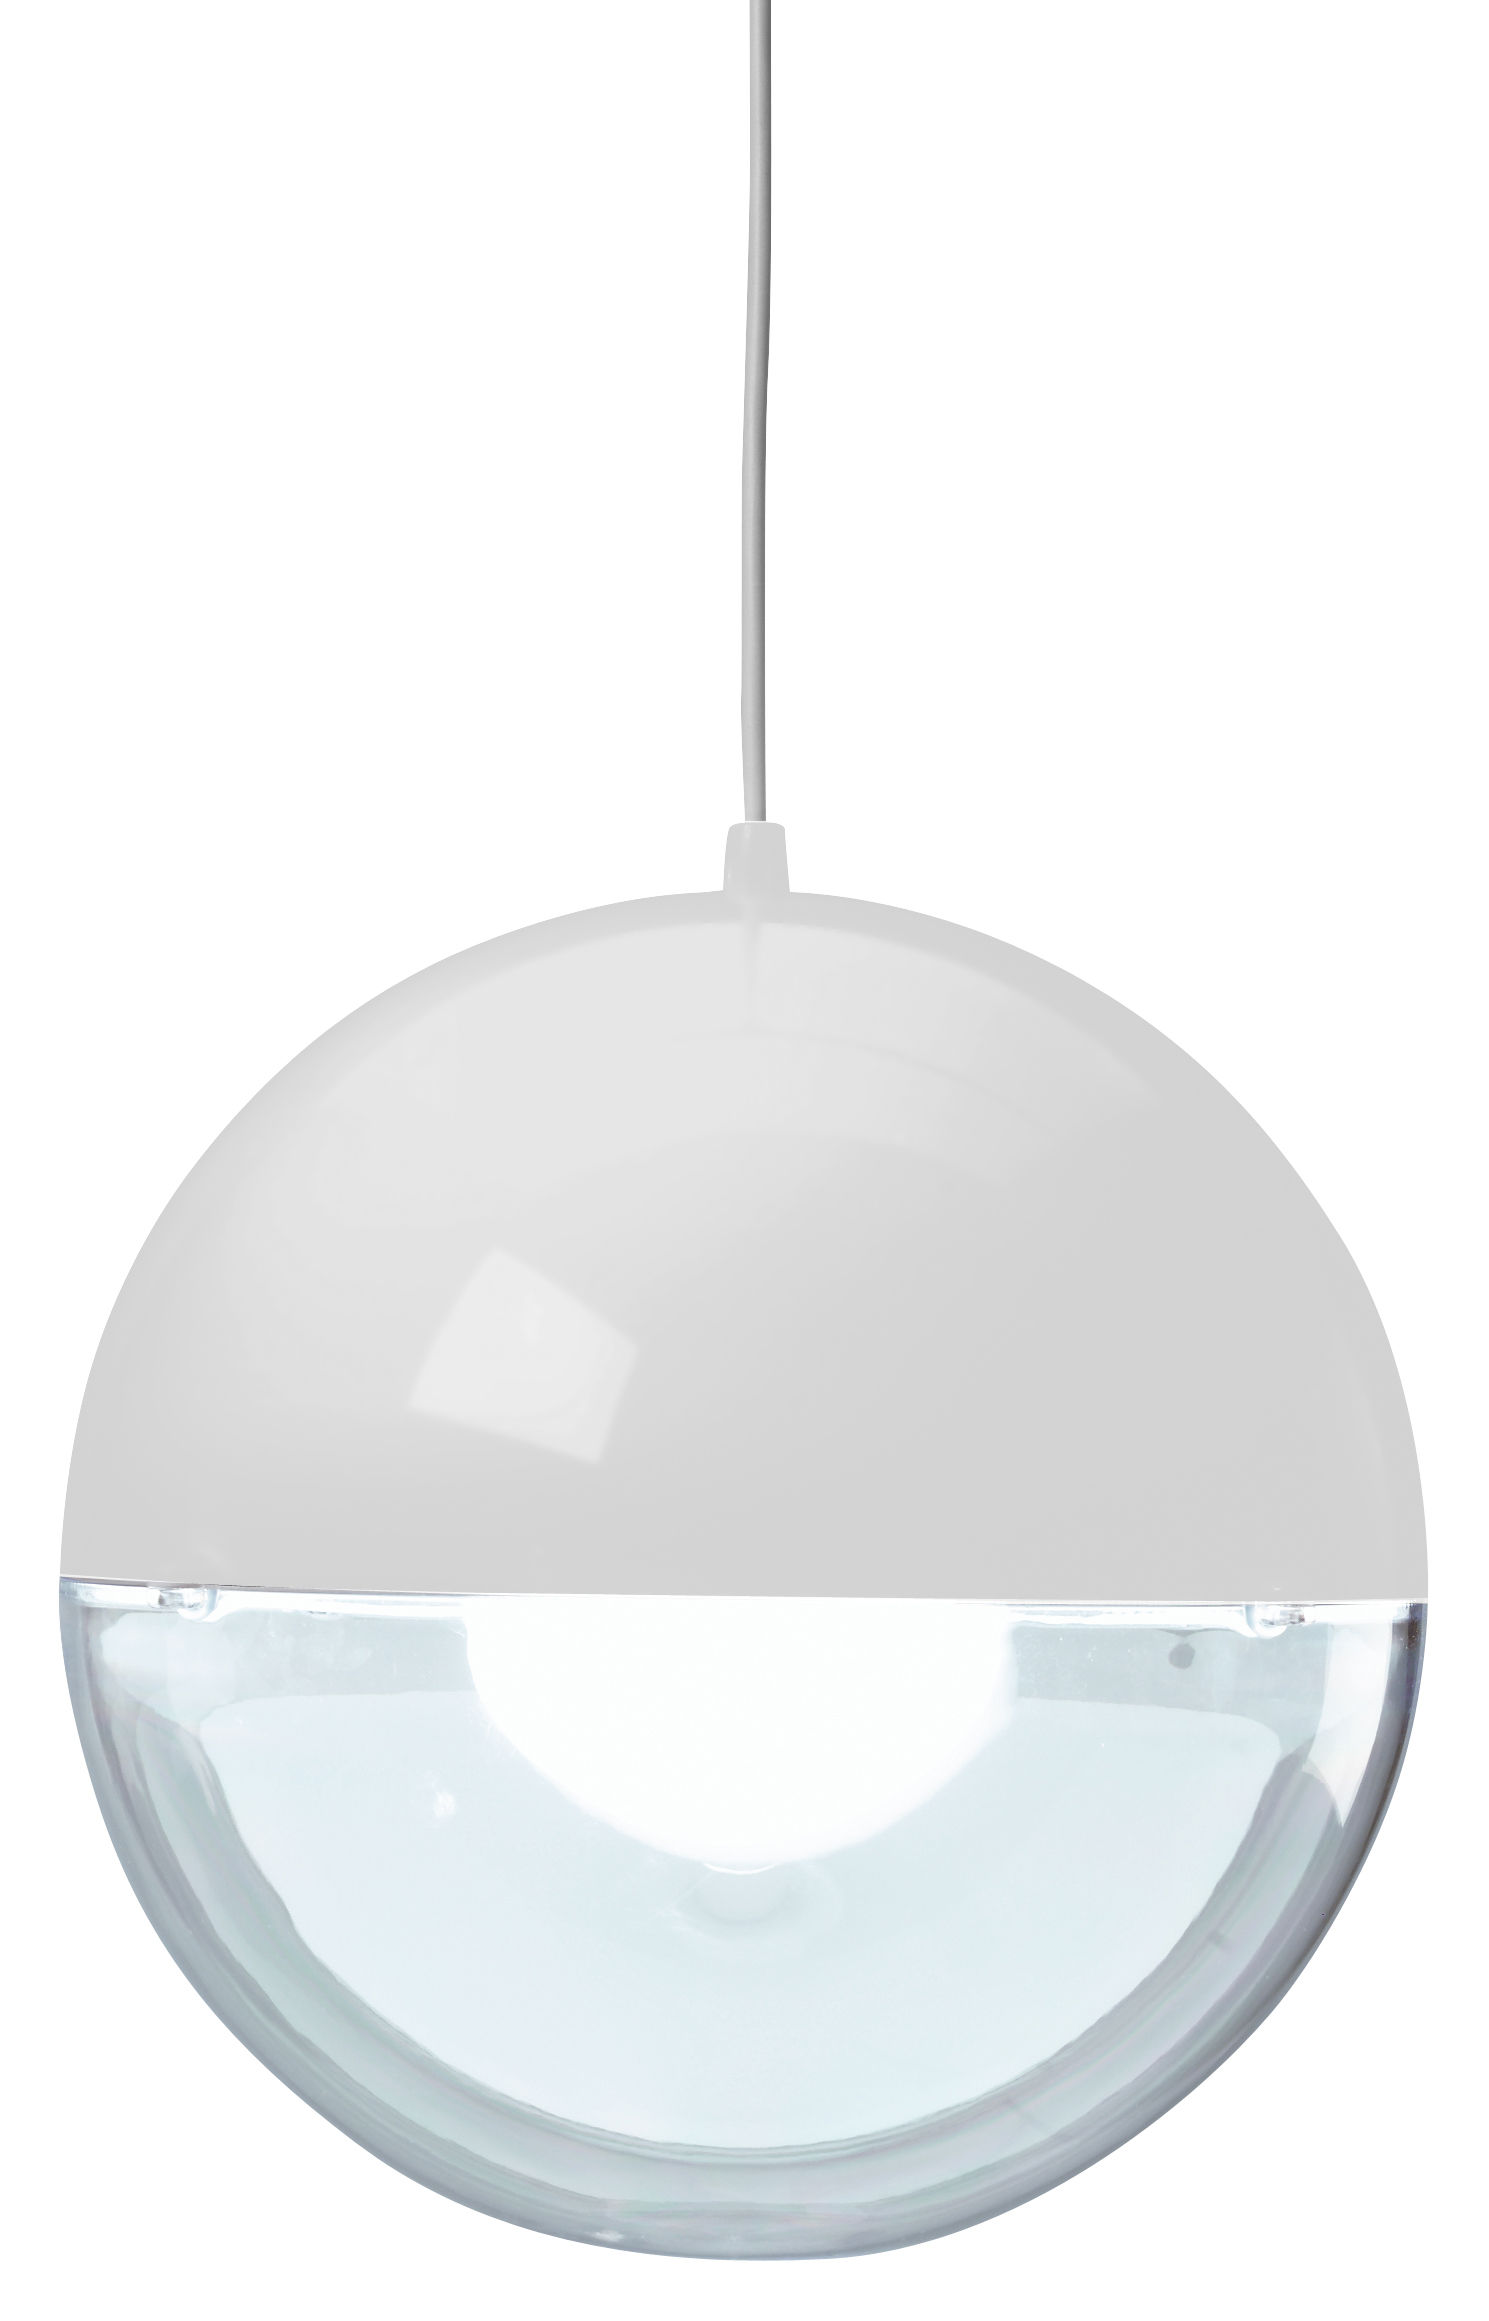 Lighting - Pendant Lighting - Orion Pendant by Koziol - White / Transparent - Polystyrene